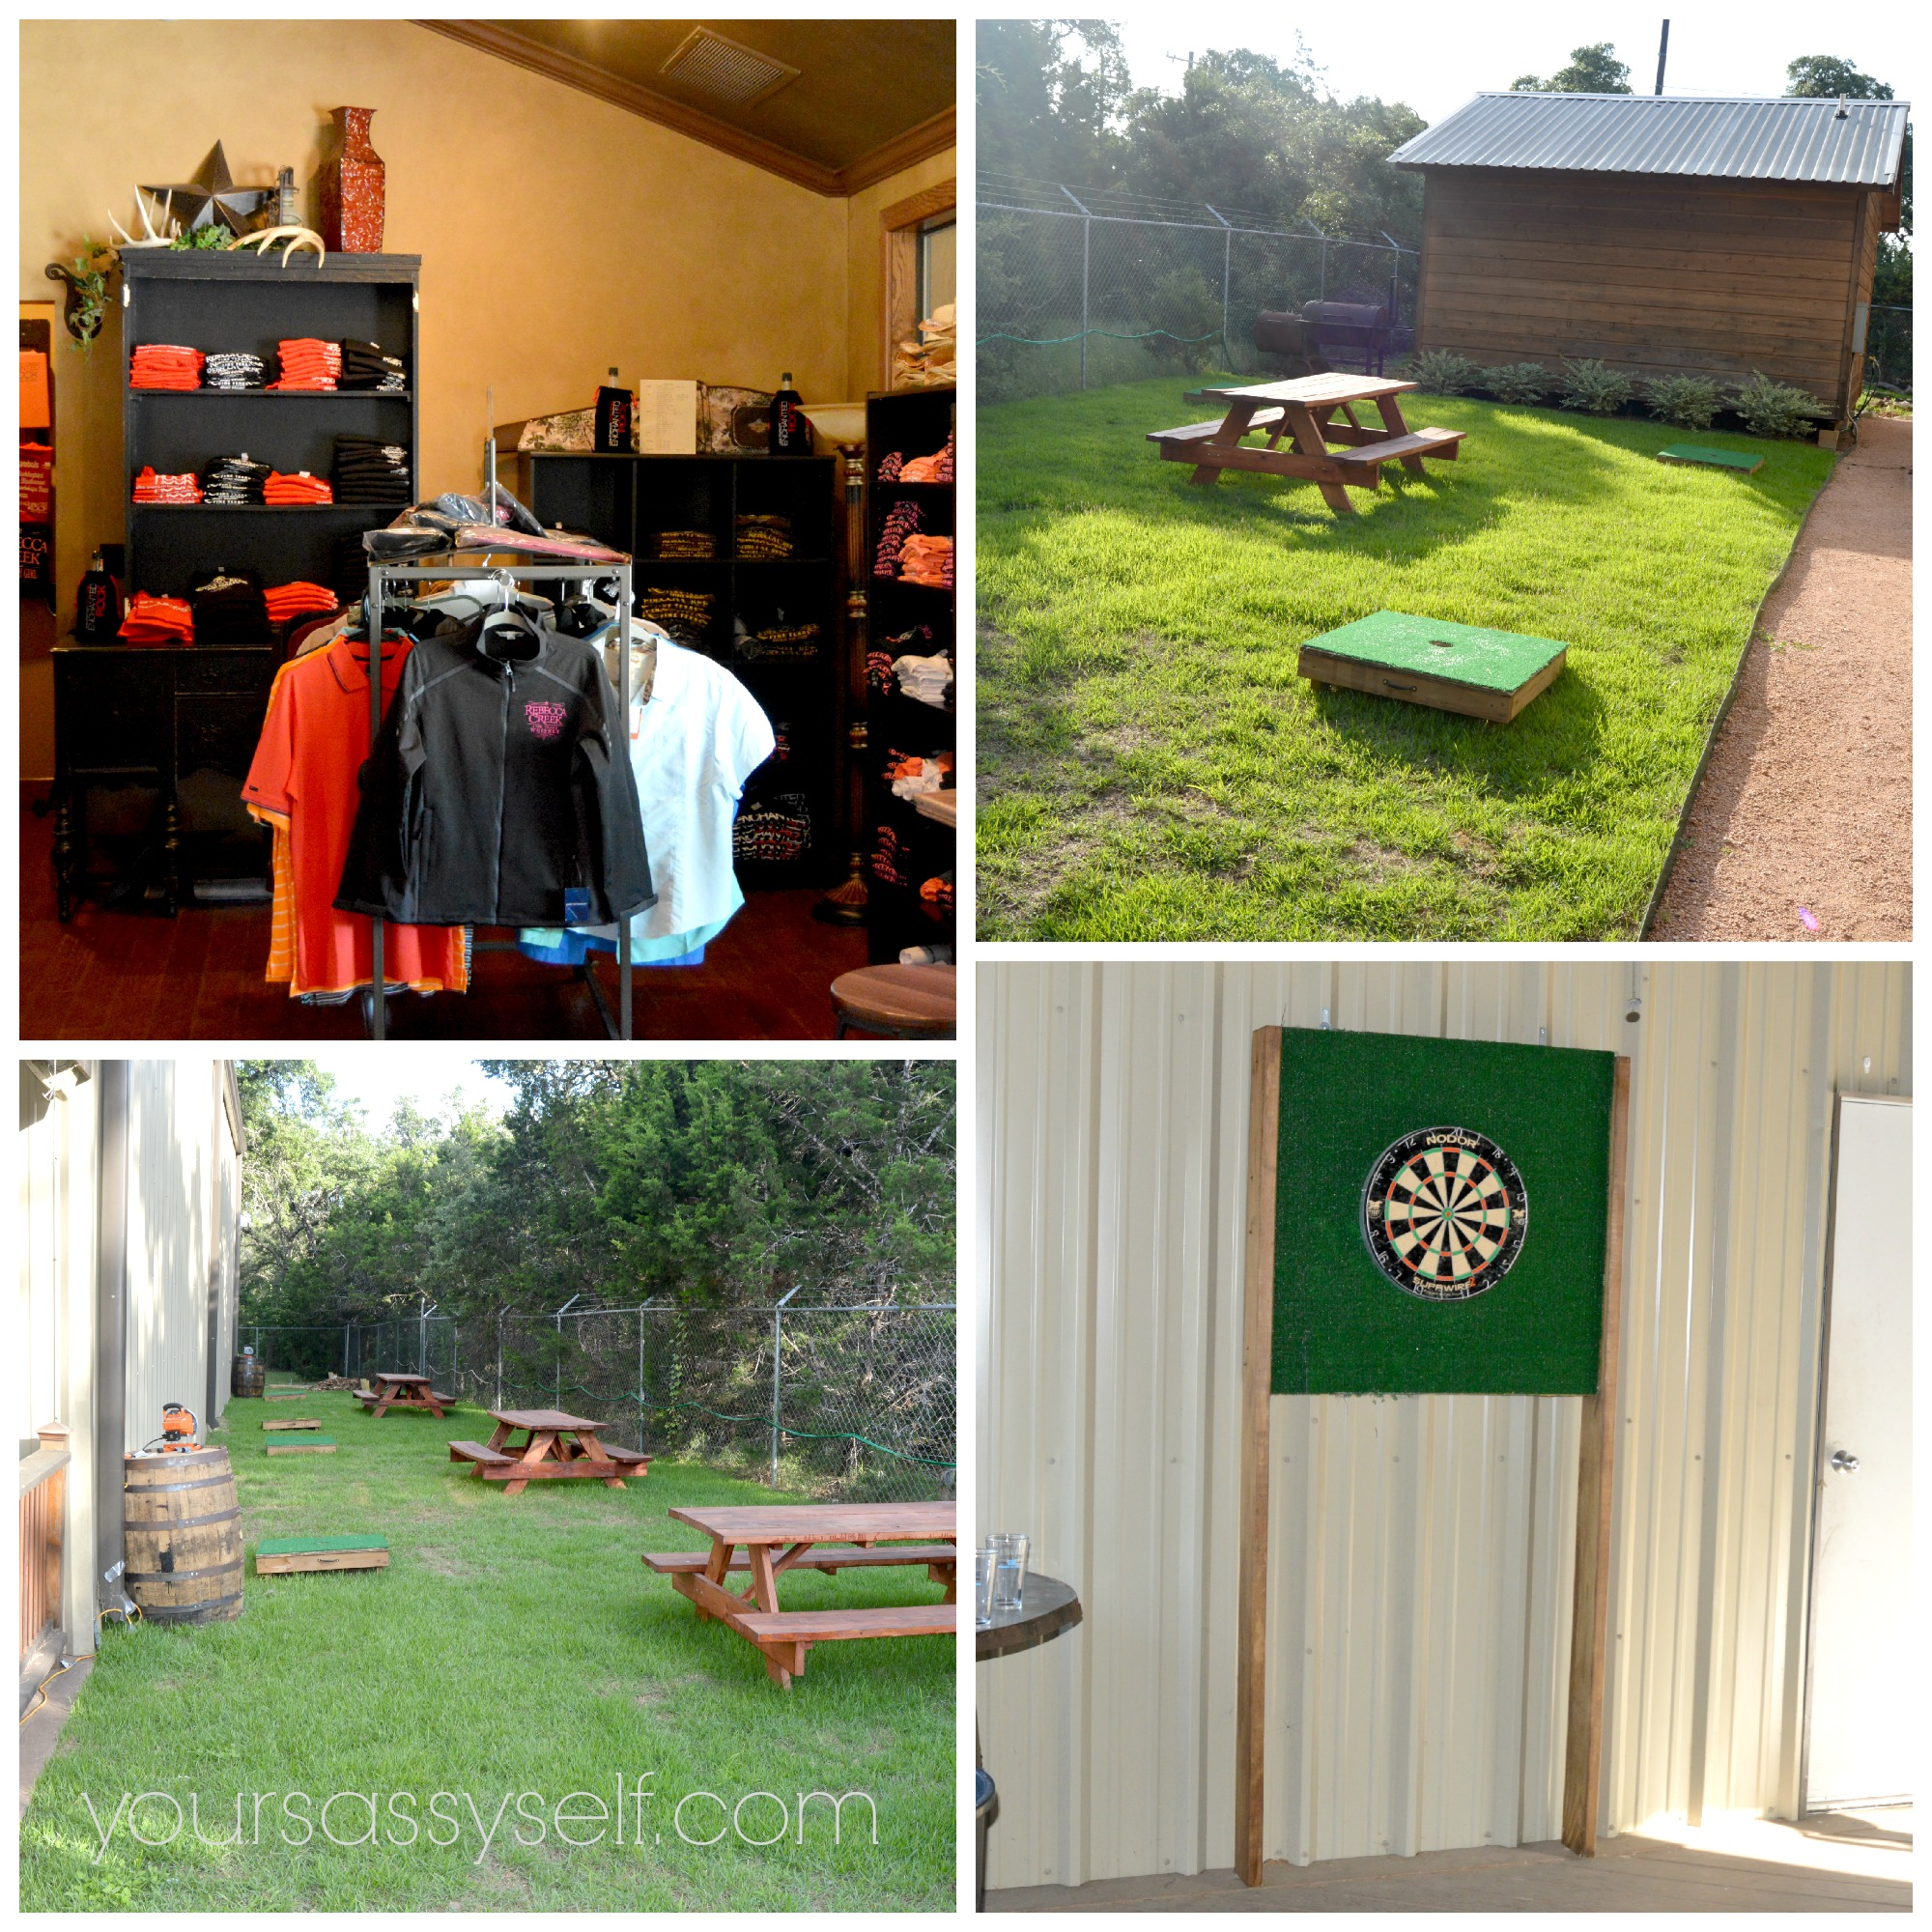 Rebecca Creek Gift Shop and Outdoor Fun - yoursassyself.com